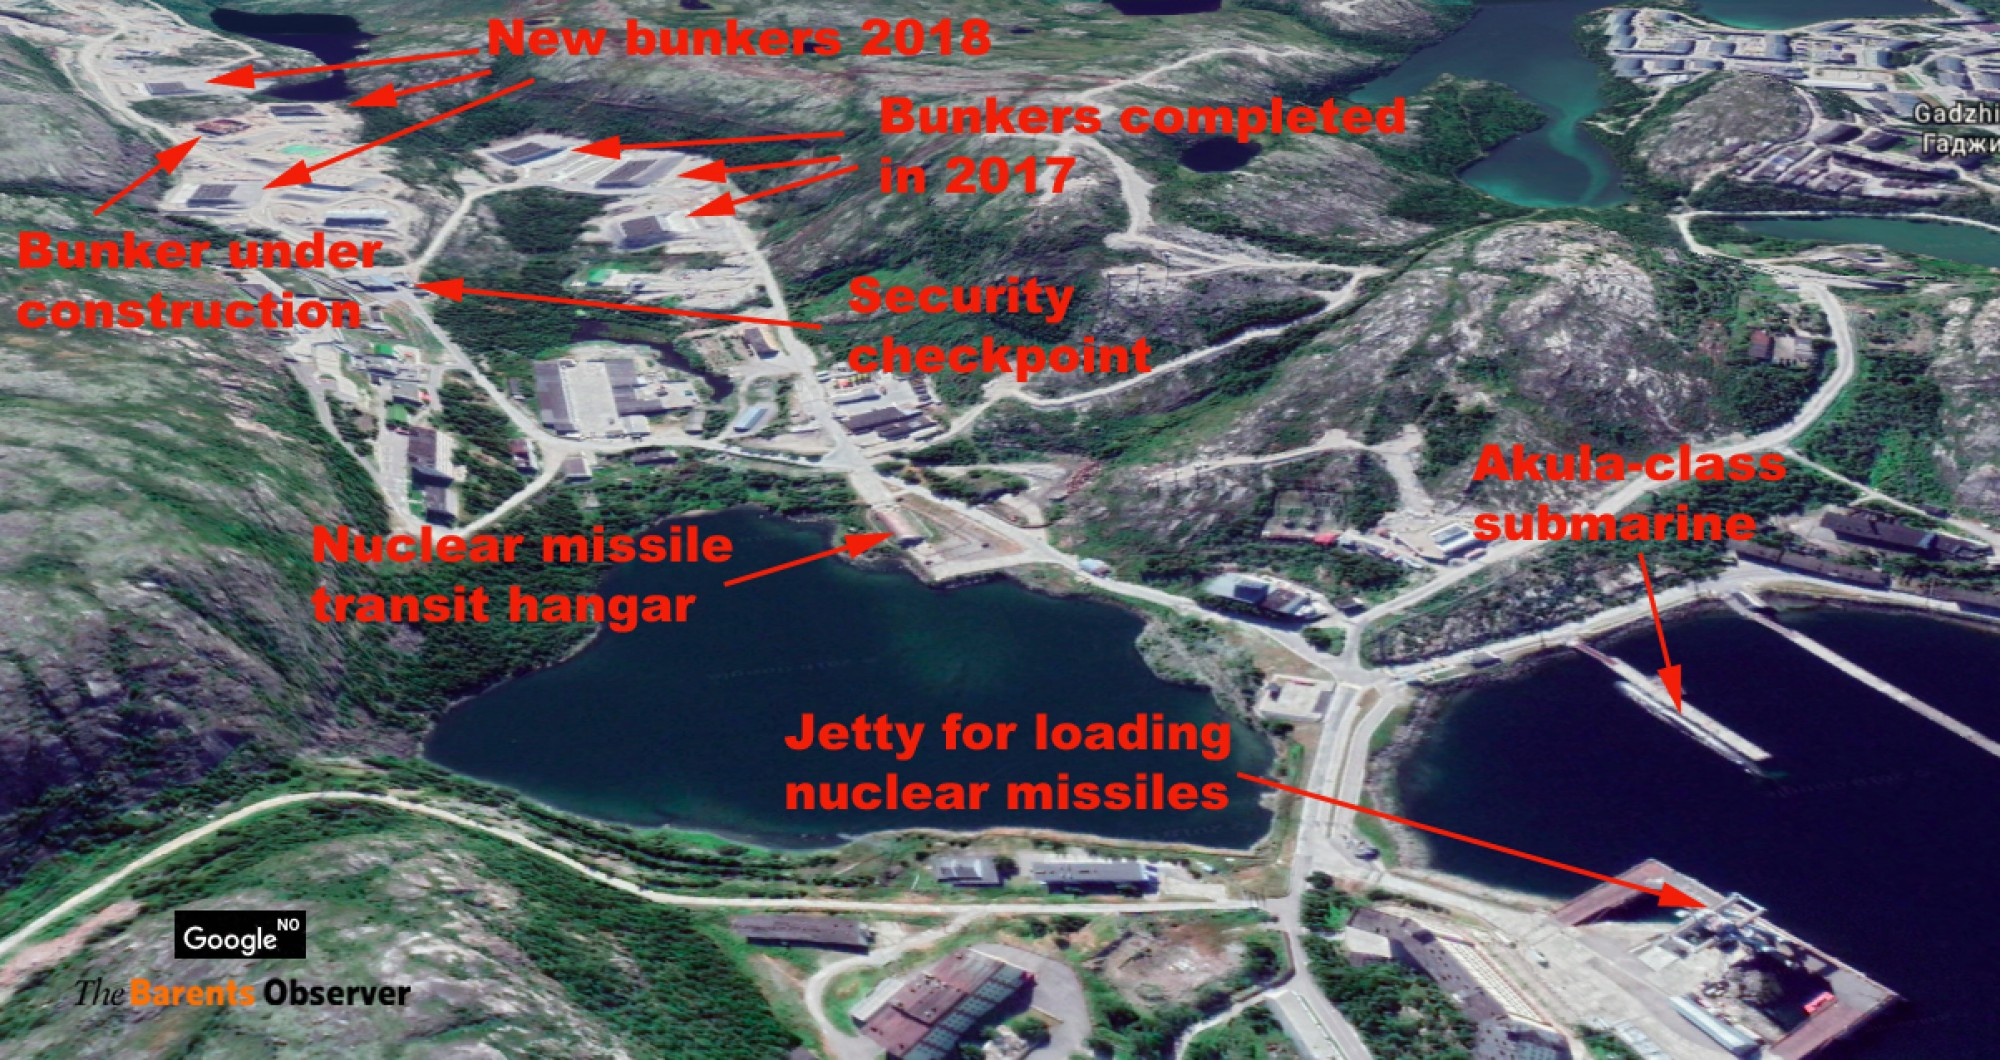 Massive construction of new protected weapons storage facilities in the Northern Fleet, Northern fleet, protected, storage, Google, Earth, Russia, new weapons, thebarentsobservercom, rocket technical, rockets, Okolnaya, about, snapshot, Gadzhievo, complex, Okolnaya, construction, complex